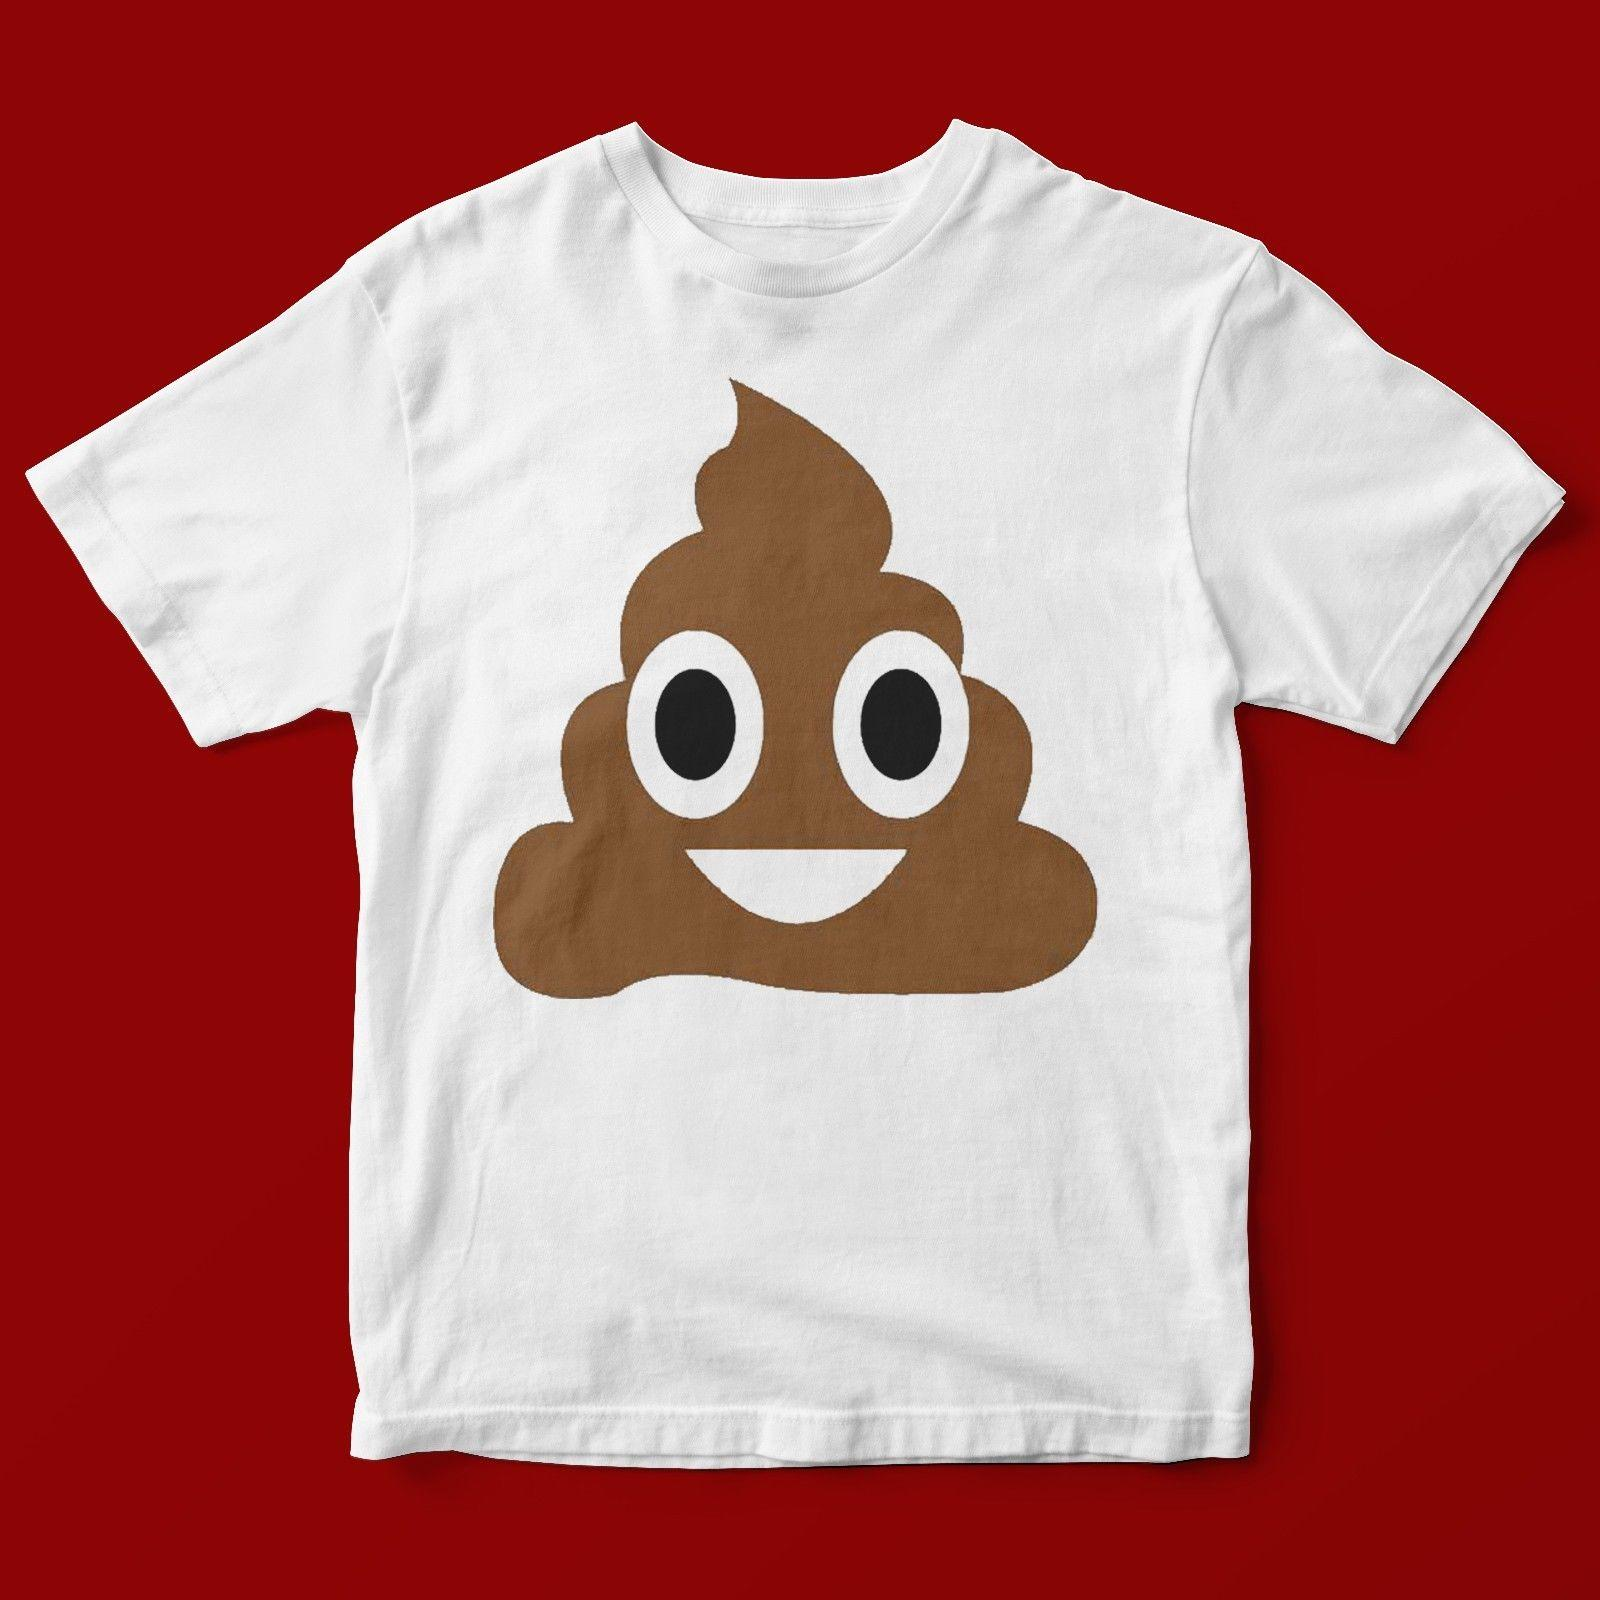 d142a5aa67 POOP EMOJI T-SHIRT UNISEX 619 Fashion Print Novelty Loose High Quality  O-Neck T-Shirt Free Shipping